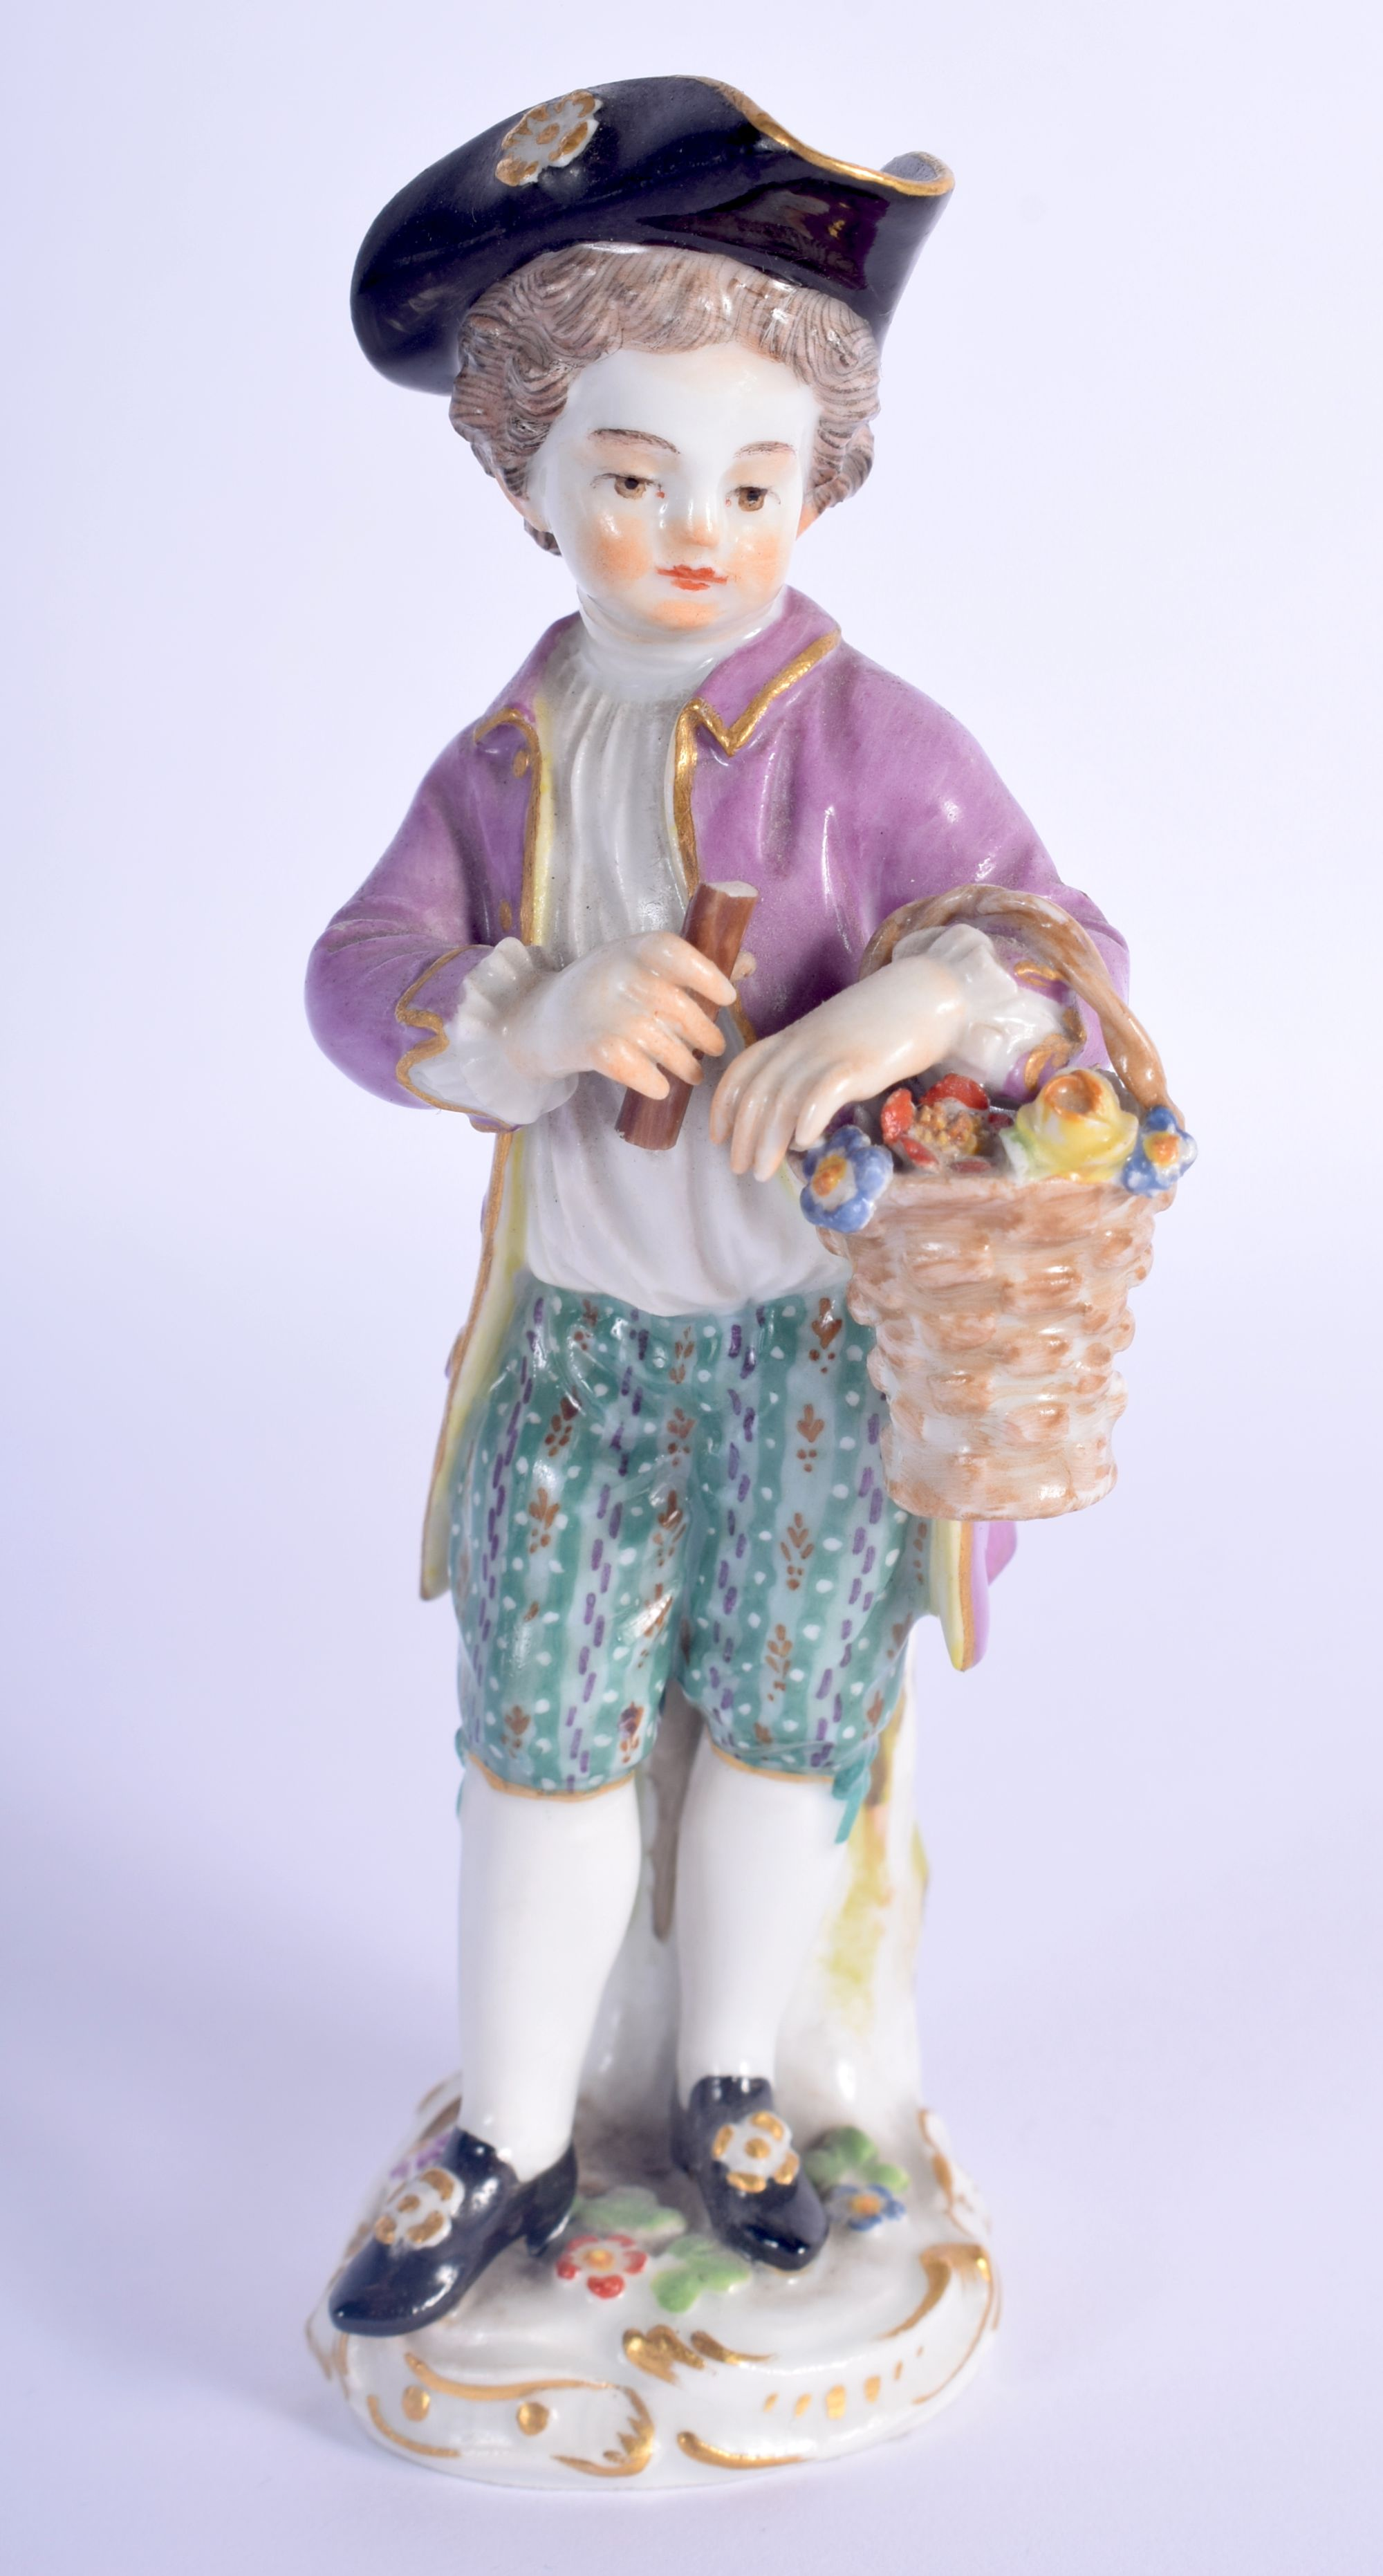 AN ANTIQUE MEISSEN PORCELAIN FIGURE OF A STANDING MALE modelled holding a basket of flowers. 13 cm h